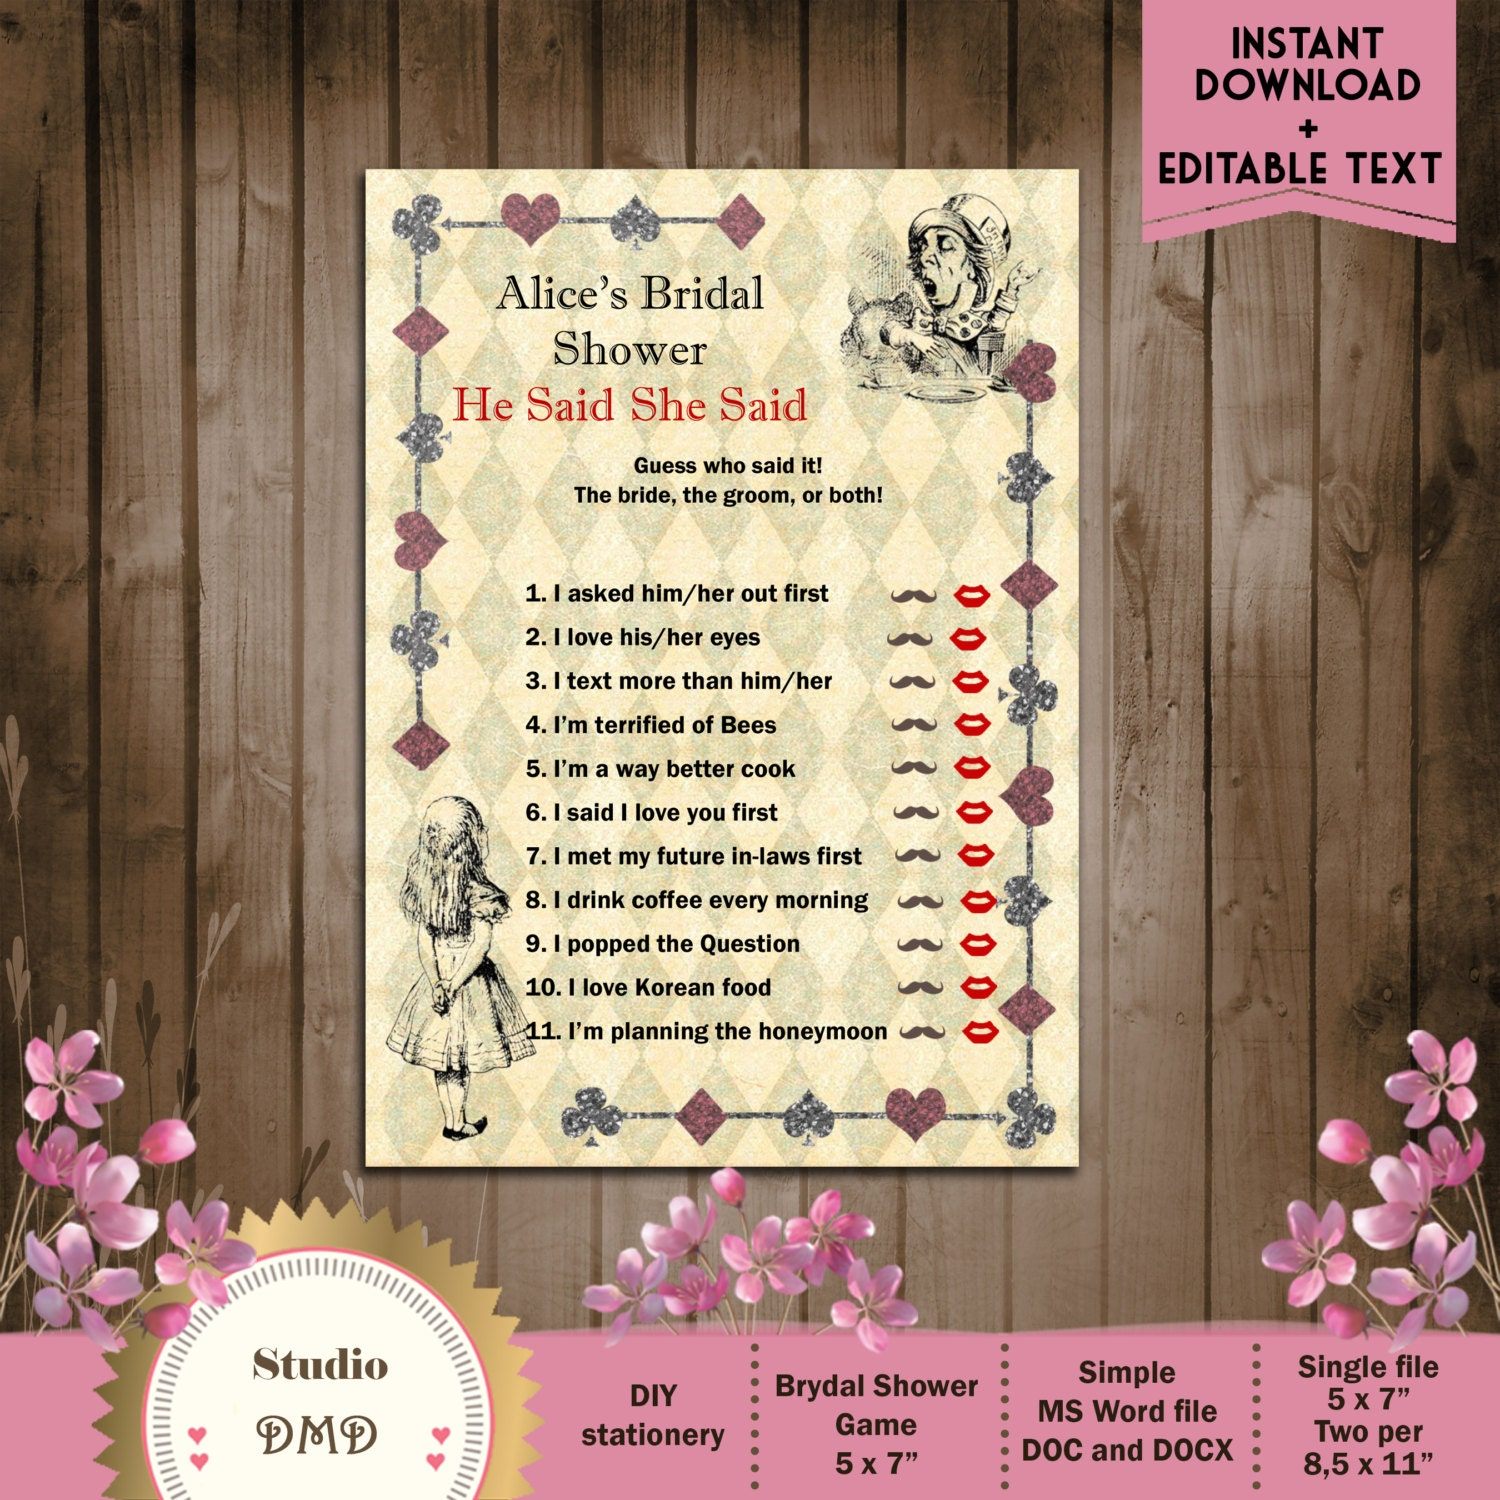 He Said She Printable Bridal Shower Game Alice In Wonderland Mad Hatter Tea Party DOWNLOAD Instantly EDITABLE TEXT Word